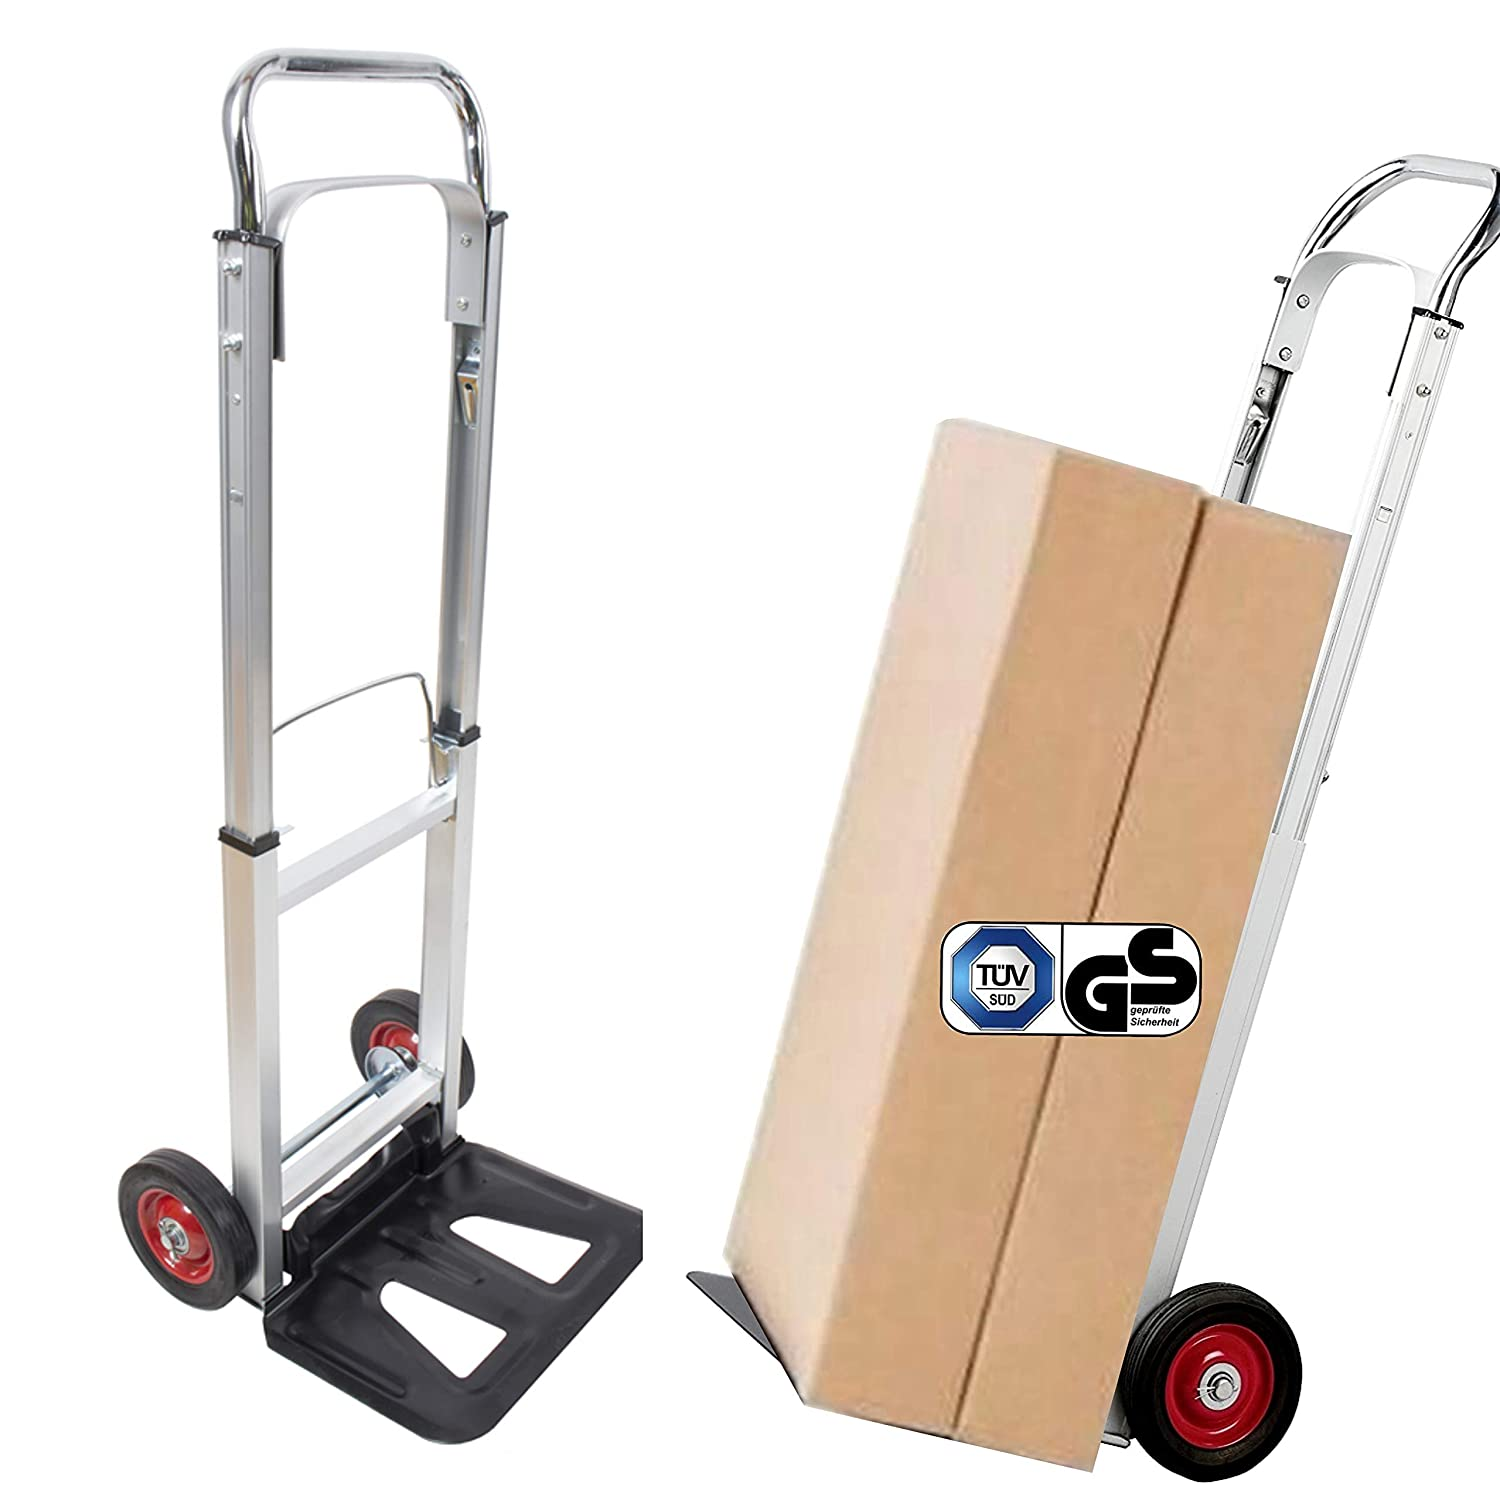 TÜ V/GS-certified Aluminium Transport Trolley, 90 kg Load, Foldable hand cart, Dolly, Luggage Cart, Hand cart, cart, moving cart Izzy Sport